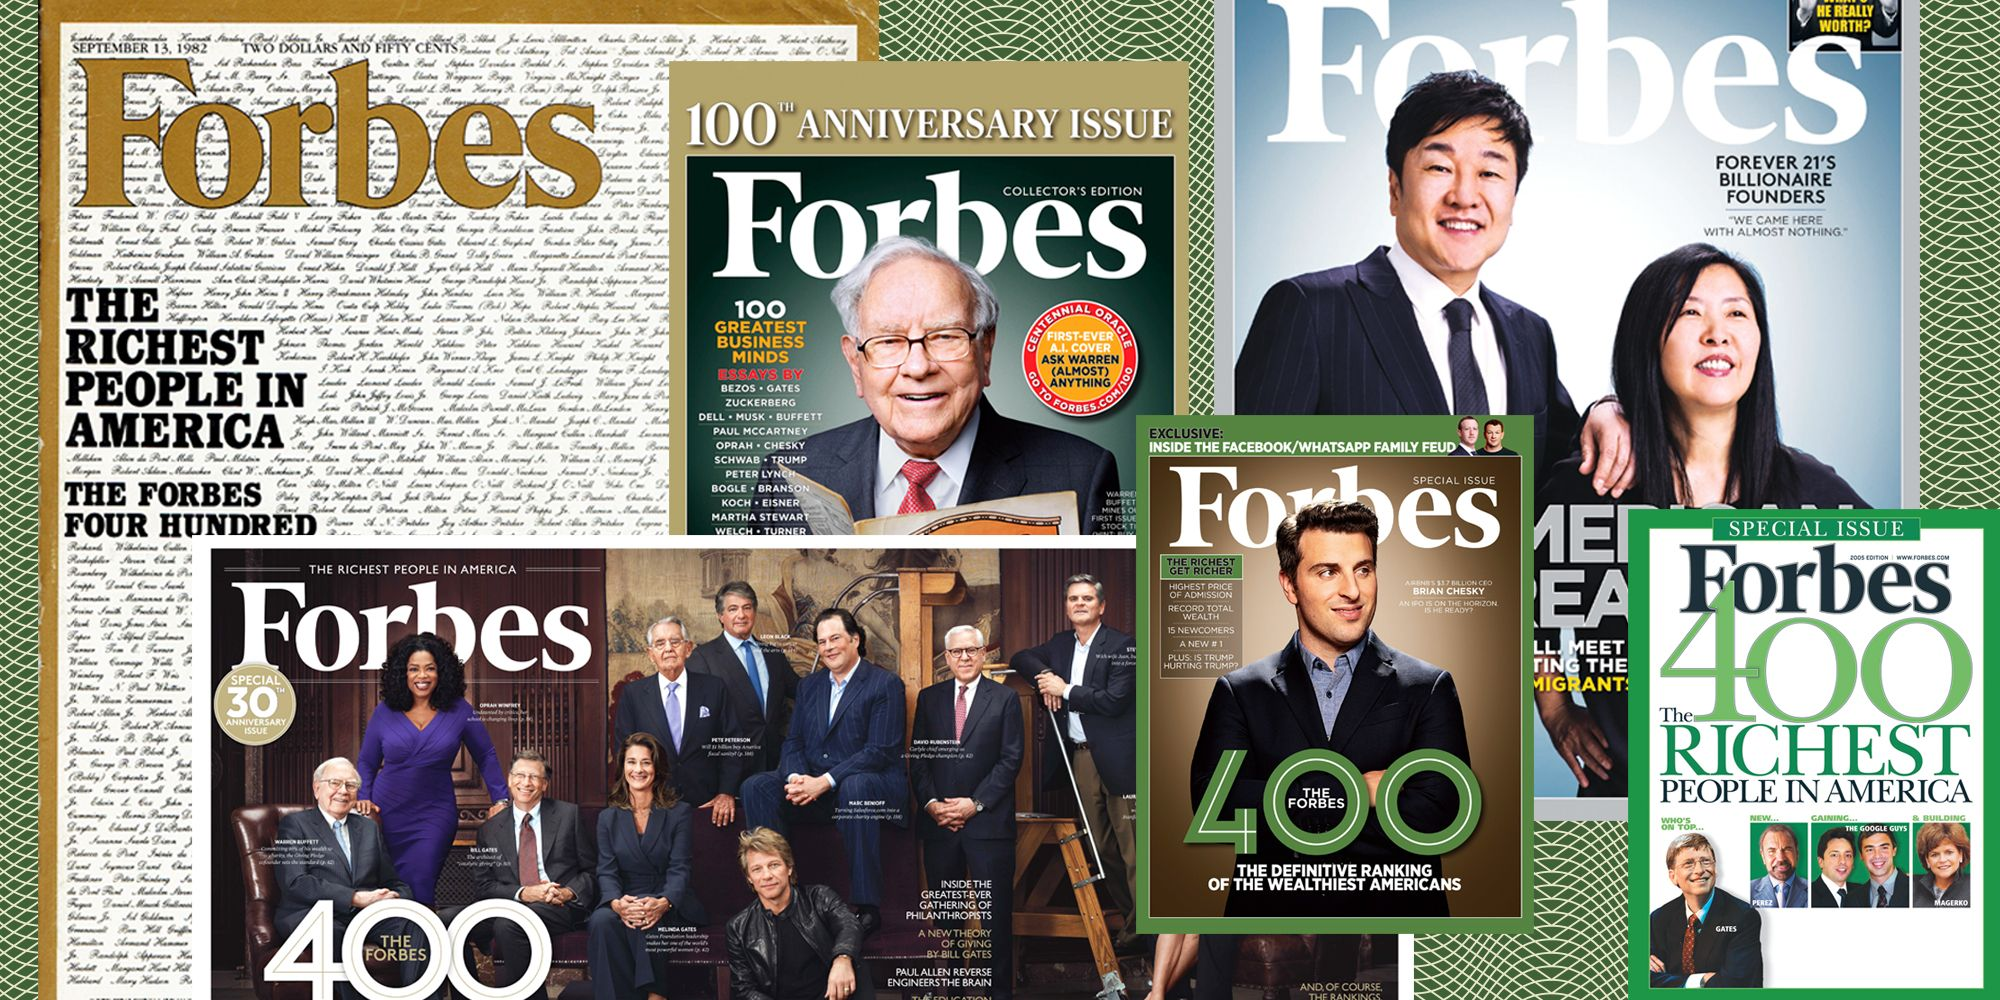 How to Get a Spot Among the Billionaires on the Forbes 400 List